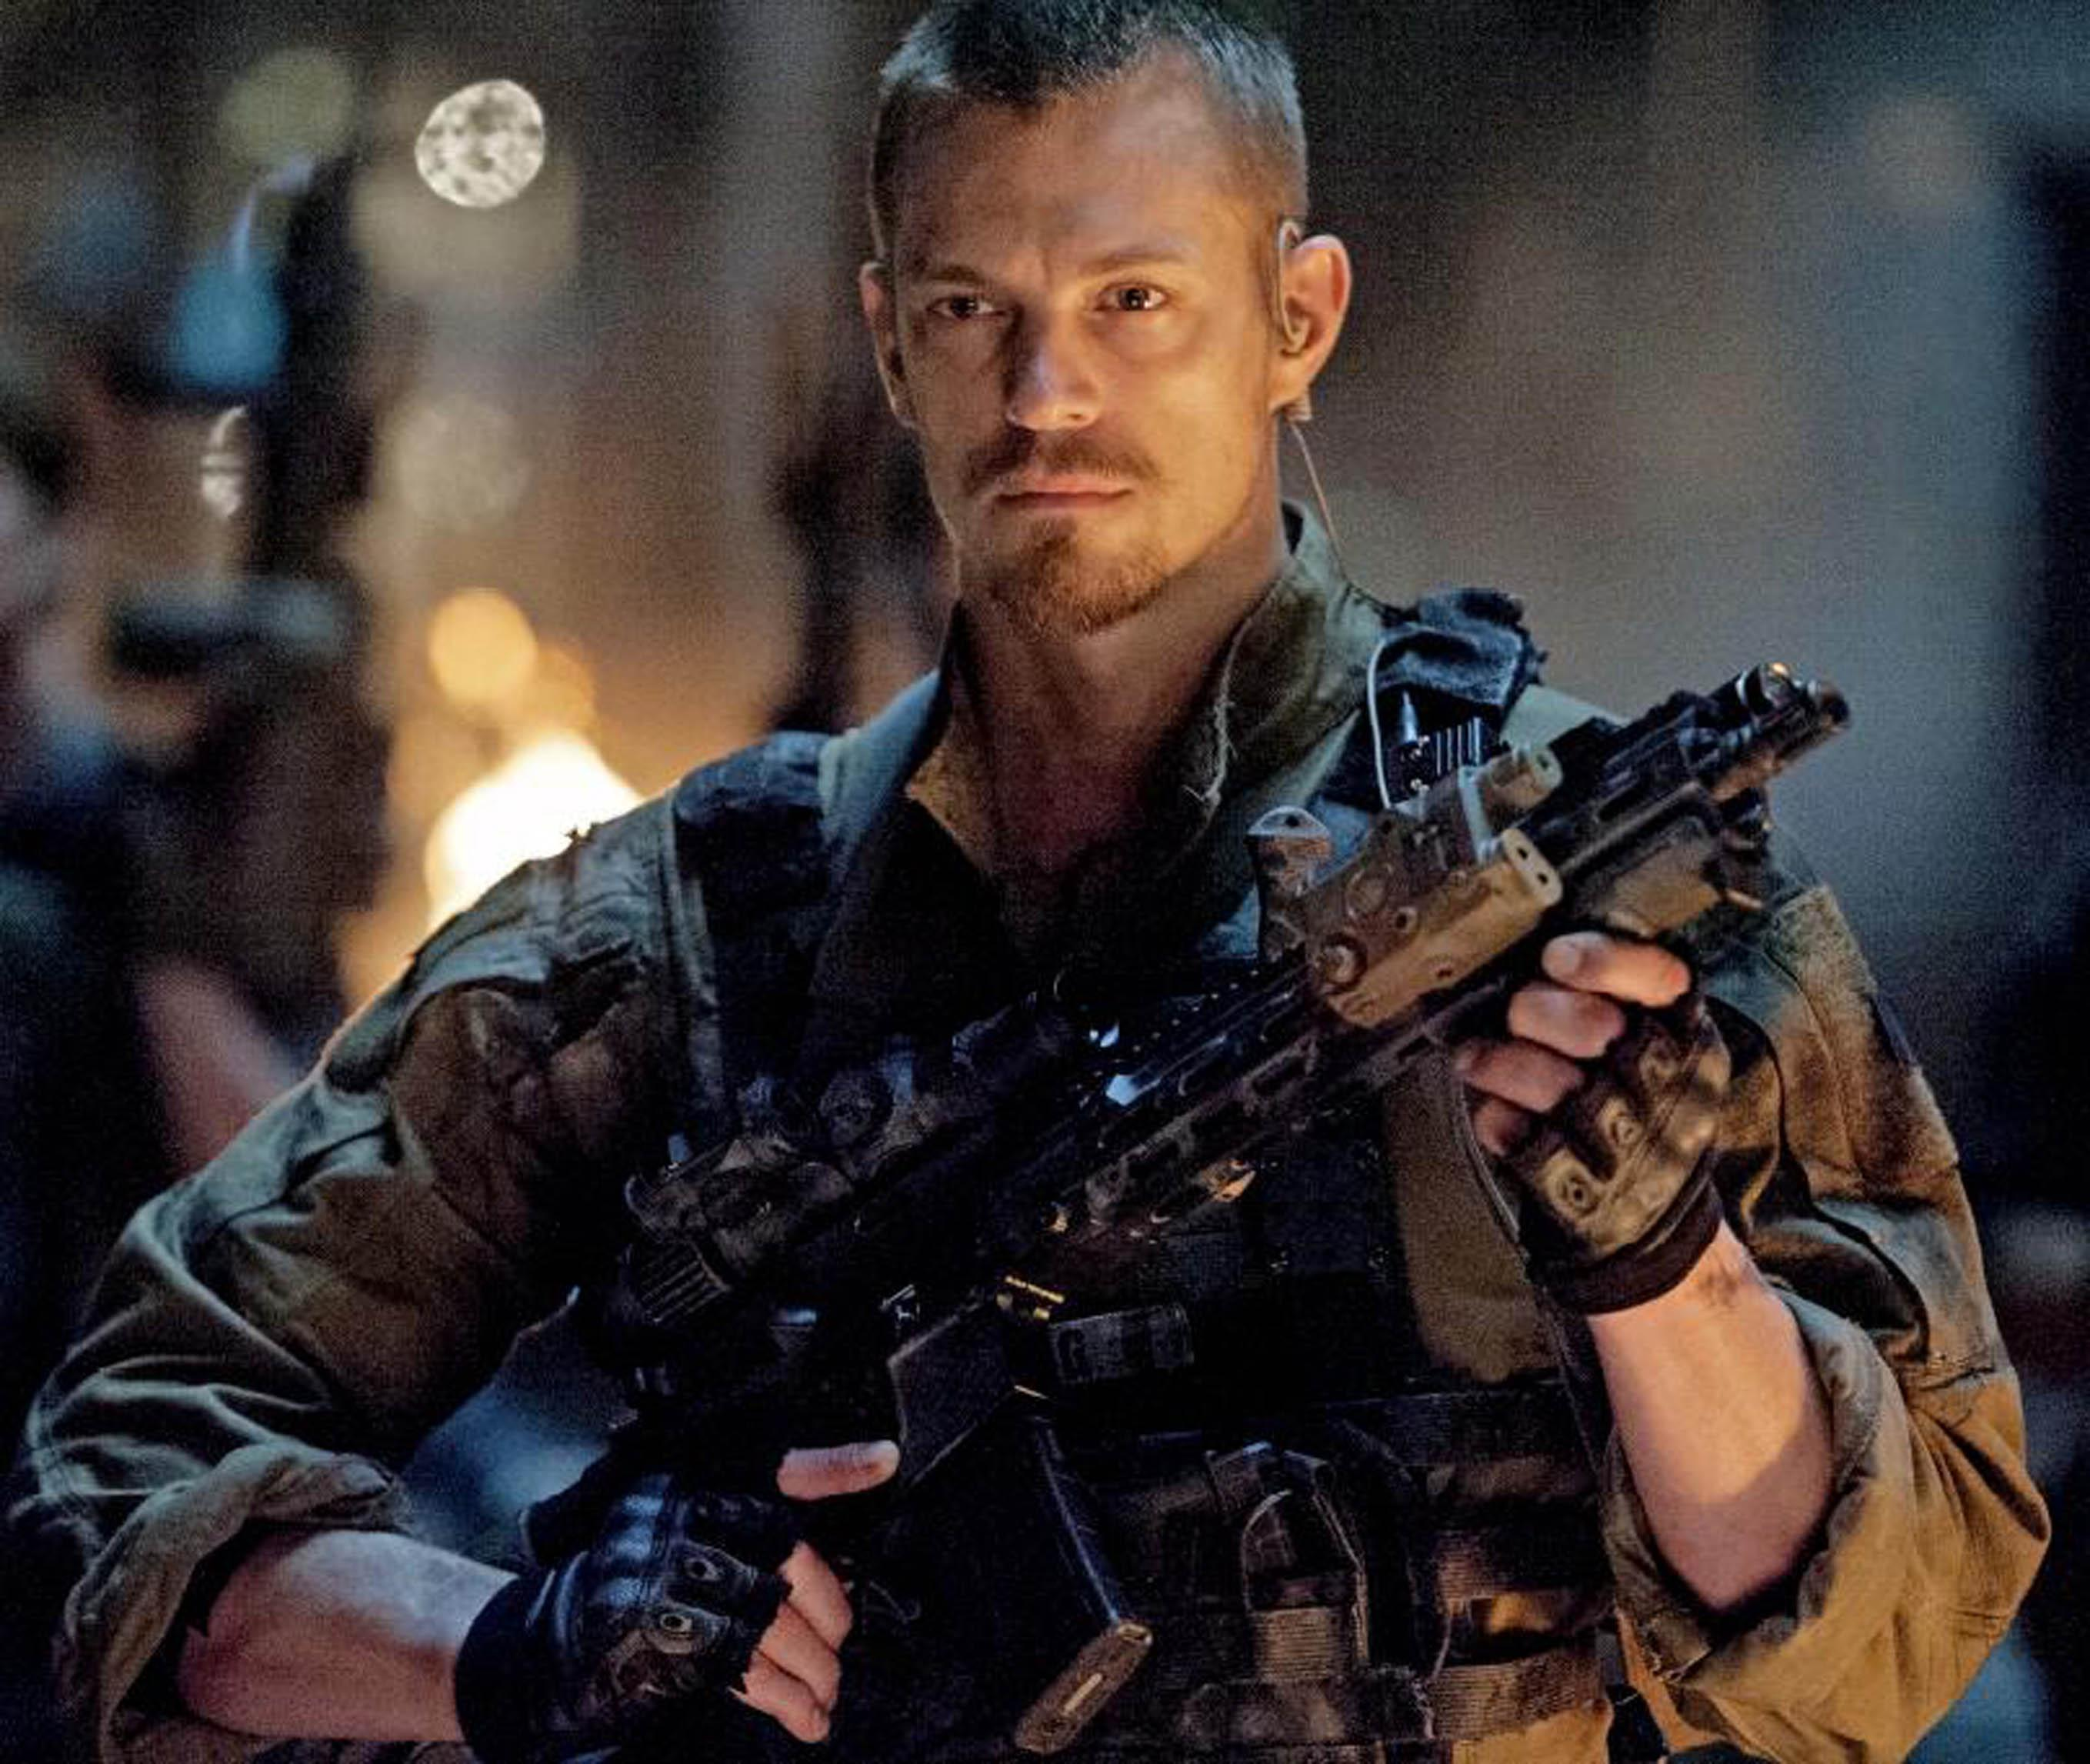 Who is Altered Carbon actor Joel Kinnaman playing Takeshi Kovacs in the Netflix drama and what else has the Robocop star appeared in?